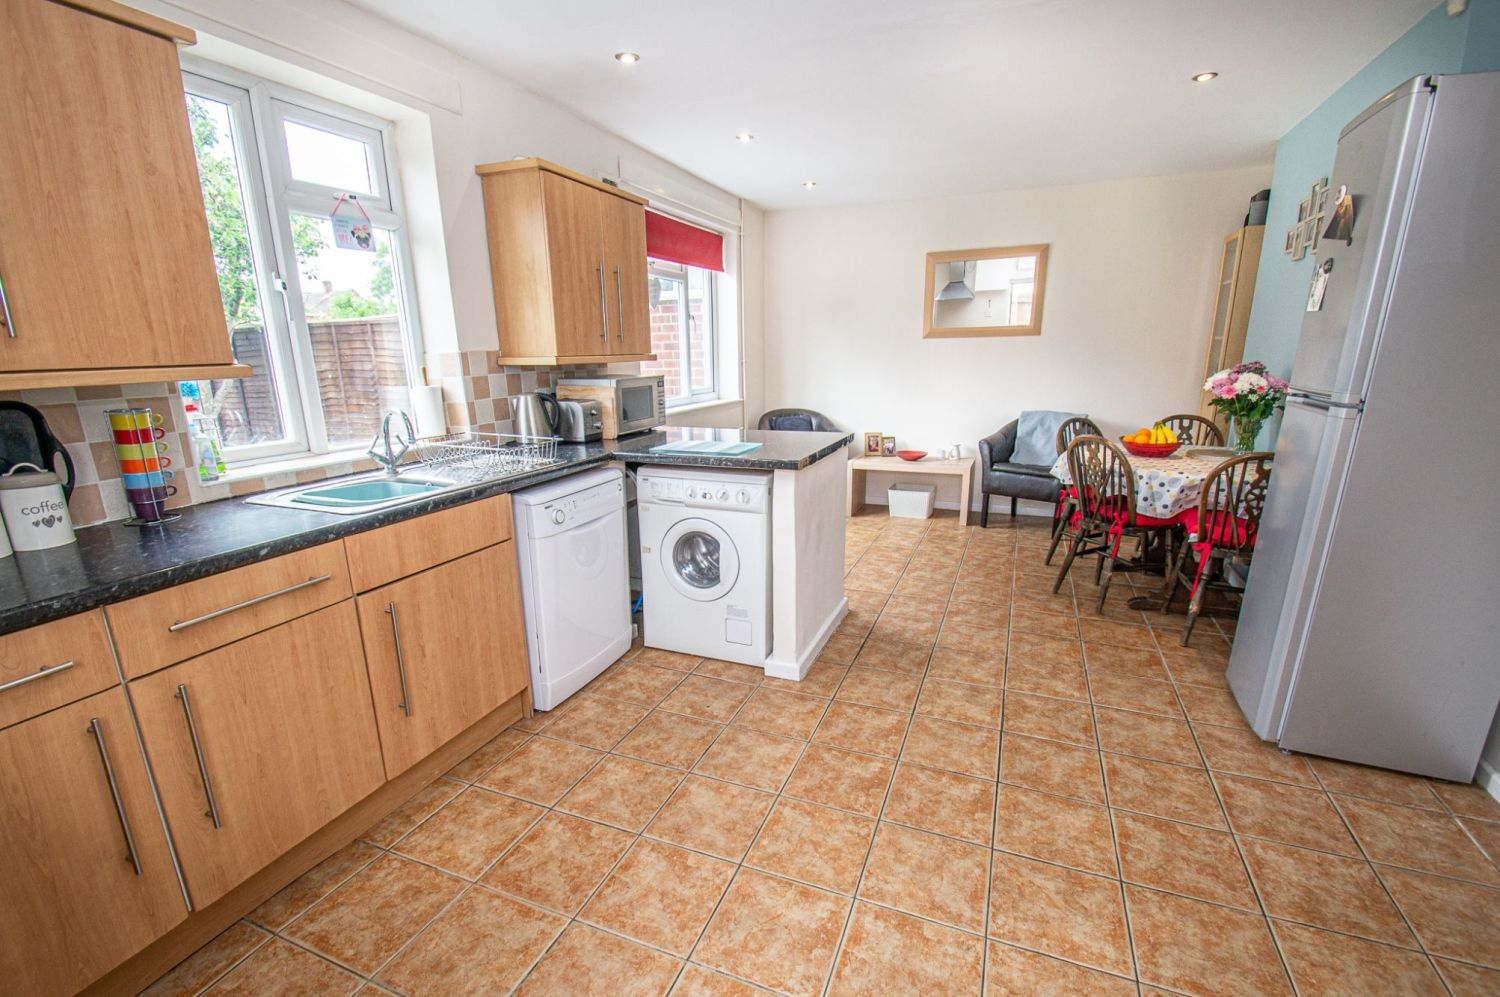 3 bed semi-detached for sale in Gauden Road, Wollescote  - Property Image 4